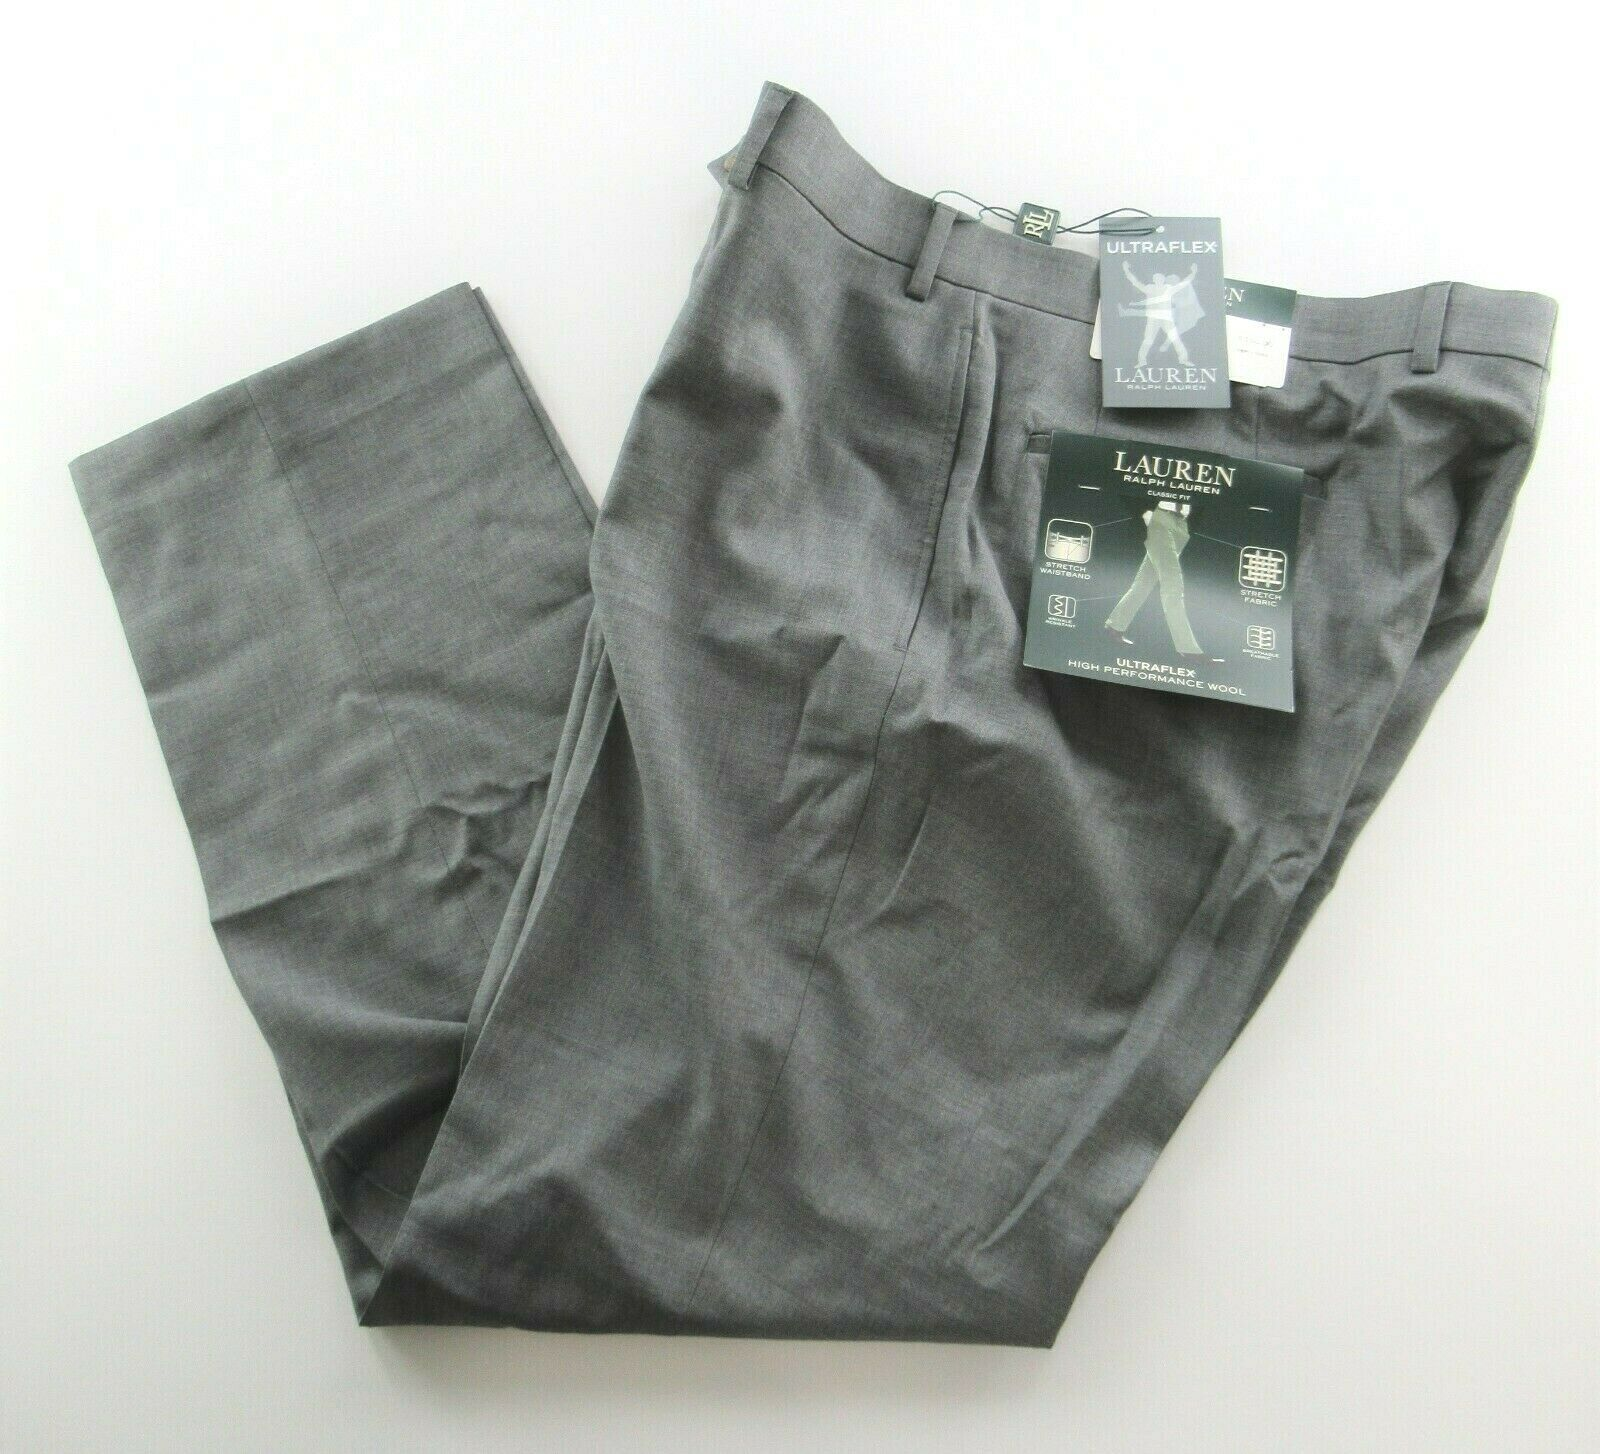 NEW Ralph Lauren 100% Wool Flat Front Dress Pants Mens 30 x 30 Wool NWT